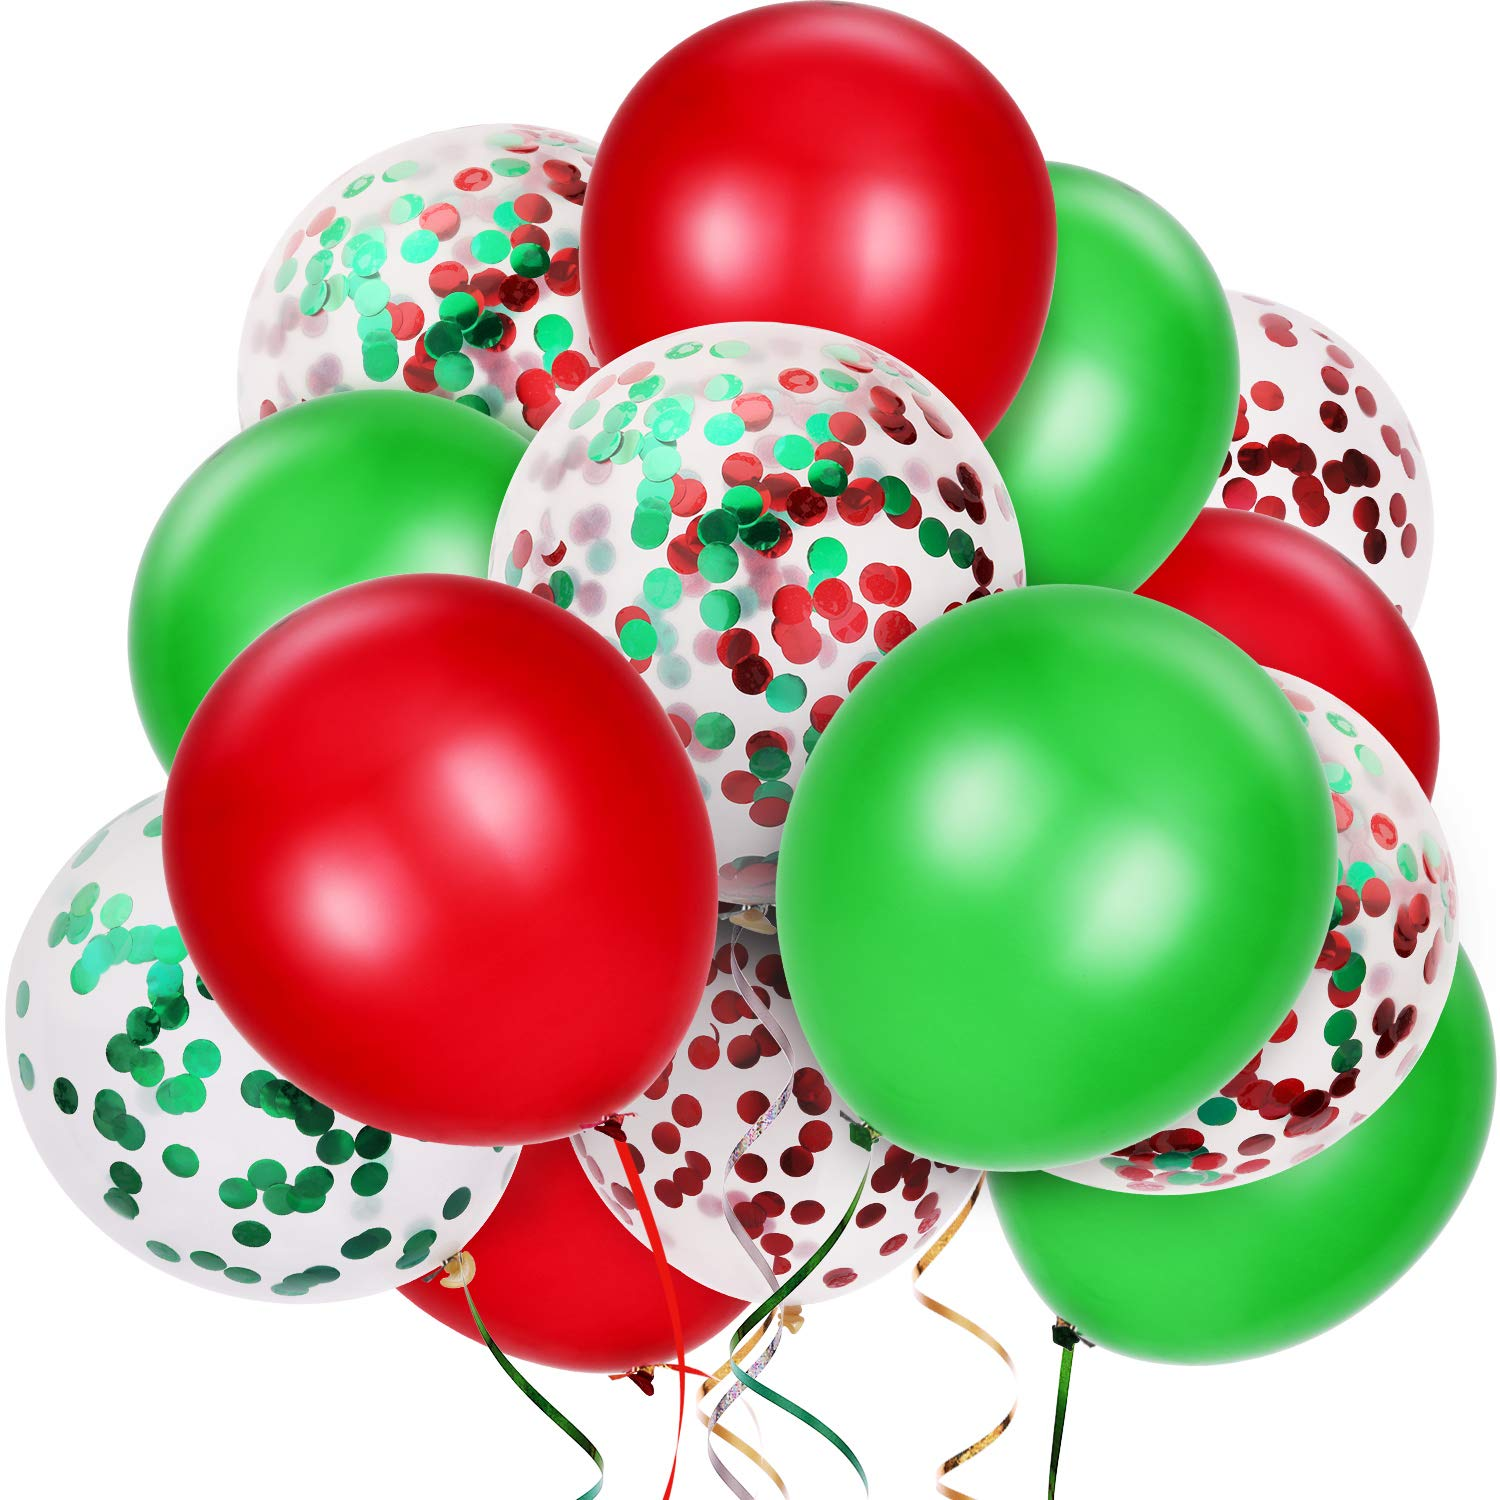 TecUnite 80 Pieces Christmas Balloons Red and Green Confetti Balloons Latex Balloons for Xmas Party Decoration, 12 Inches